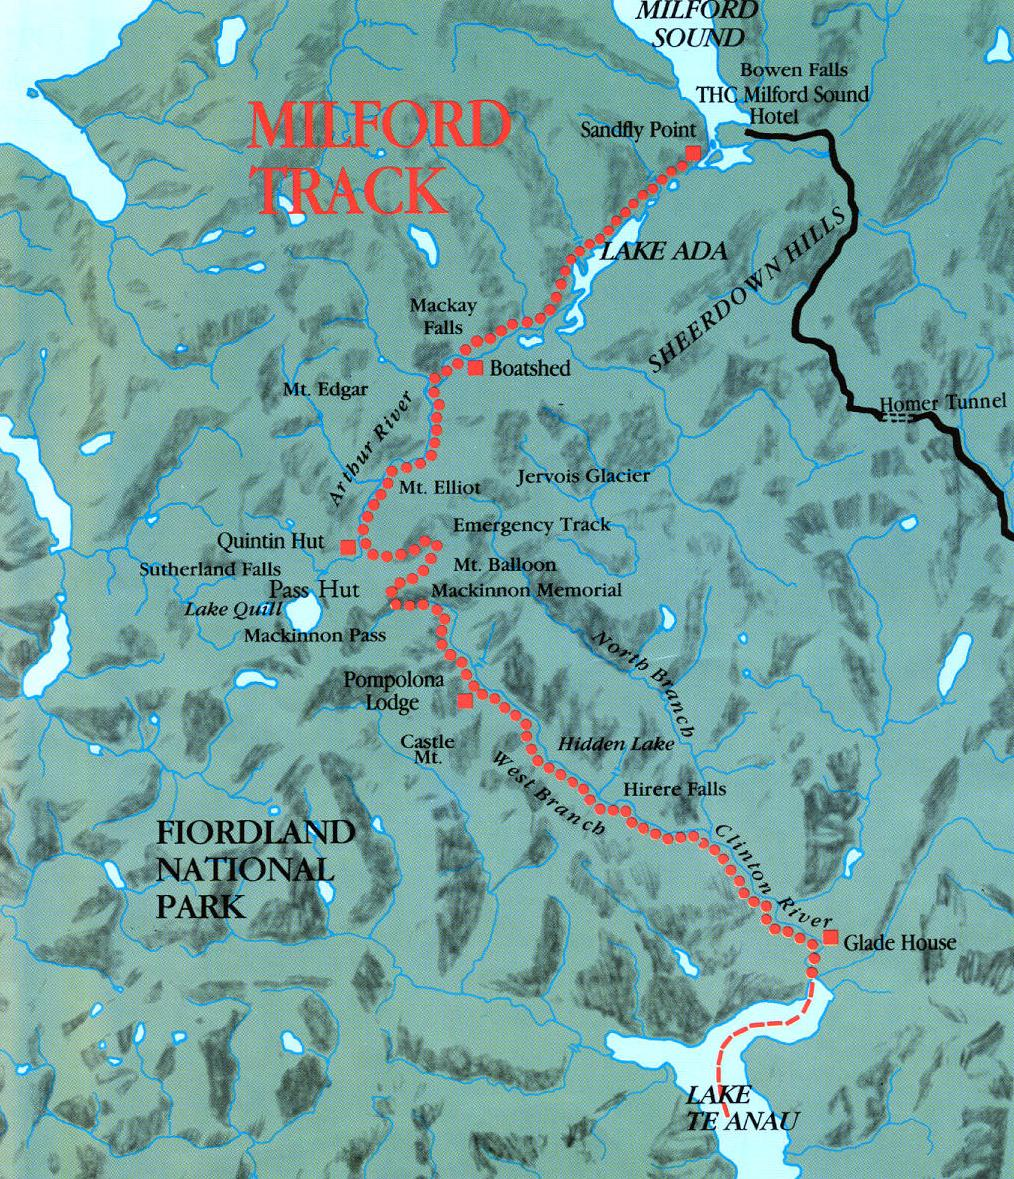 Milford Track Map Milford Track Fiordland New Zealand mappery